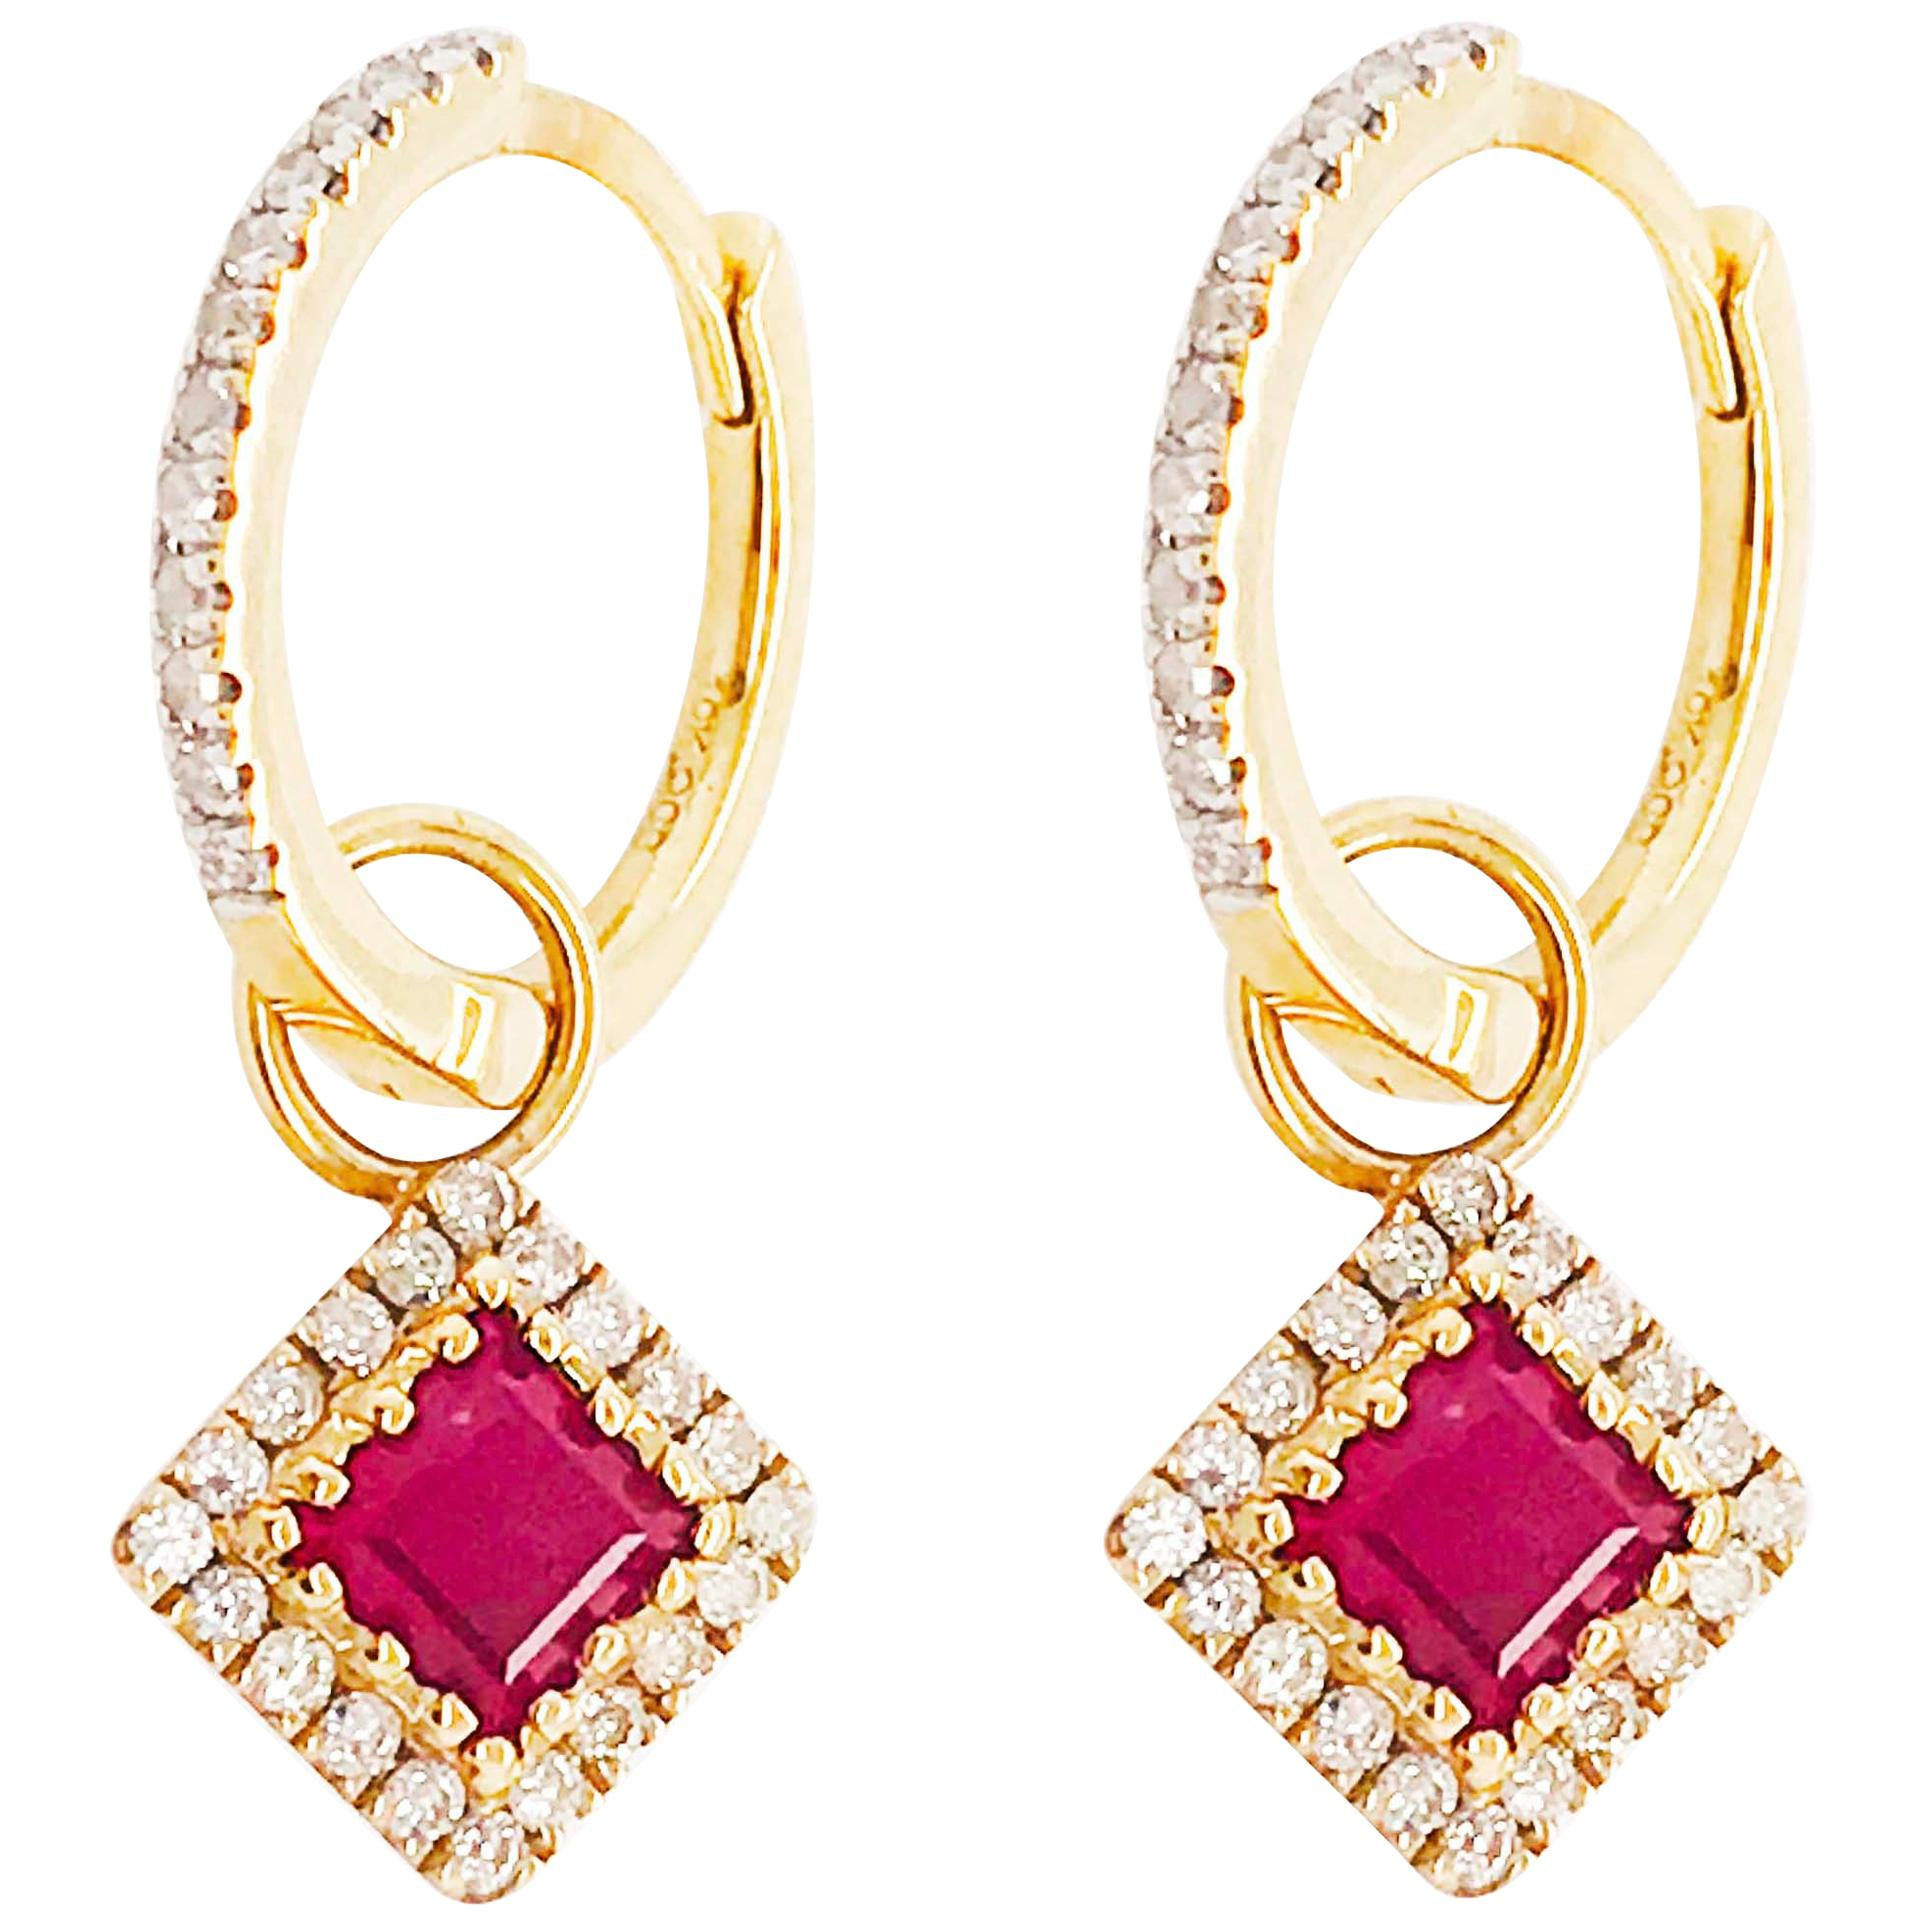 Diamond and Ruby Huggie Earrings, Gold Diamond Mini Hoops, July Diamond Charms